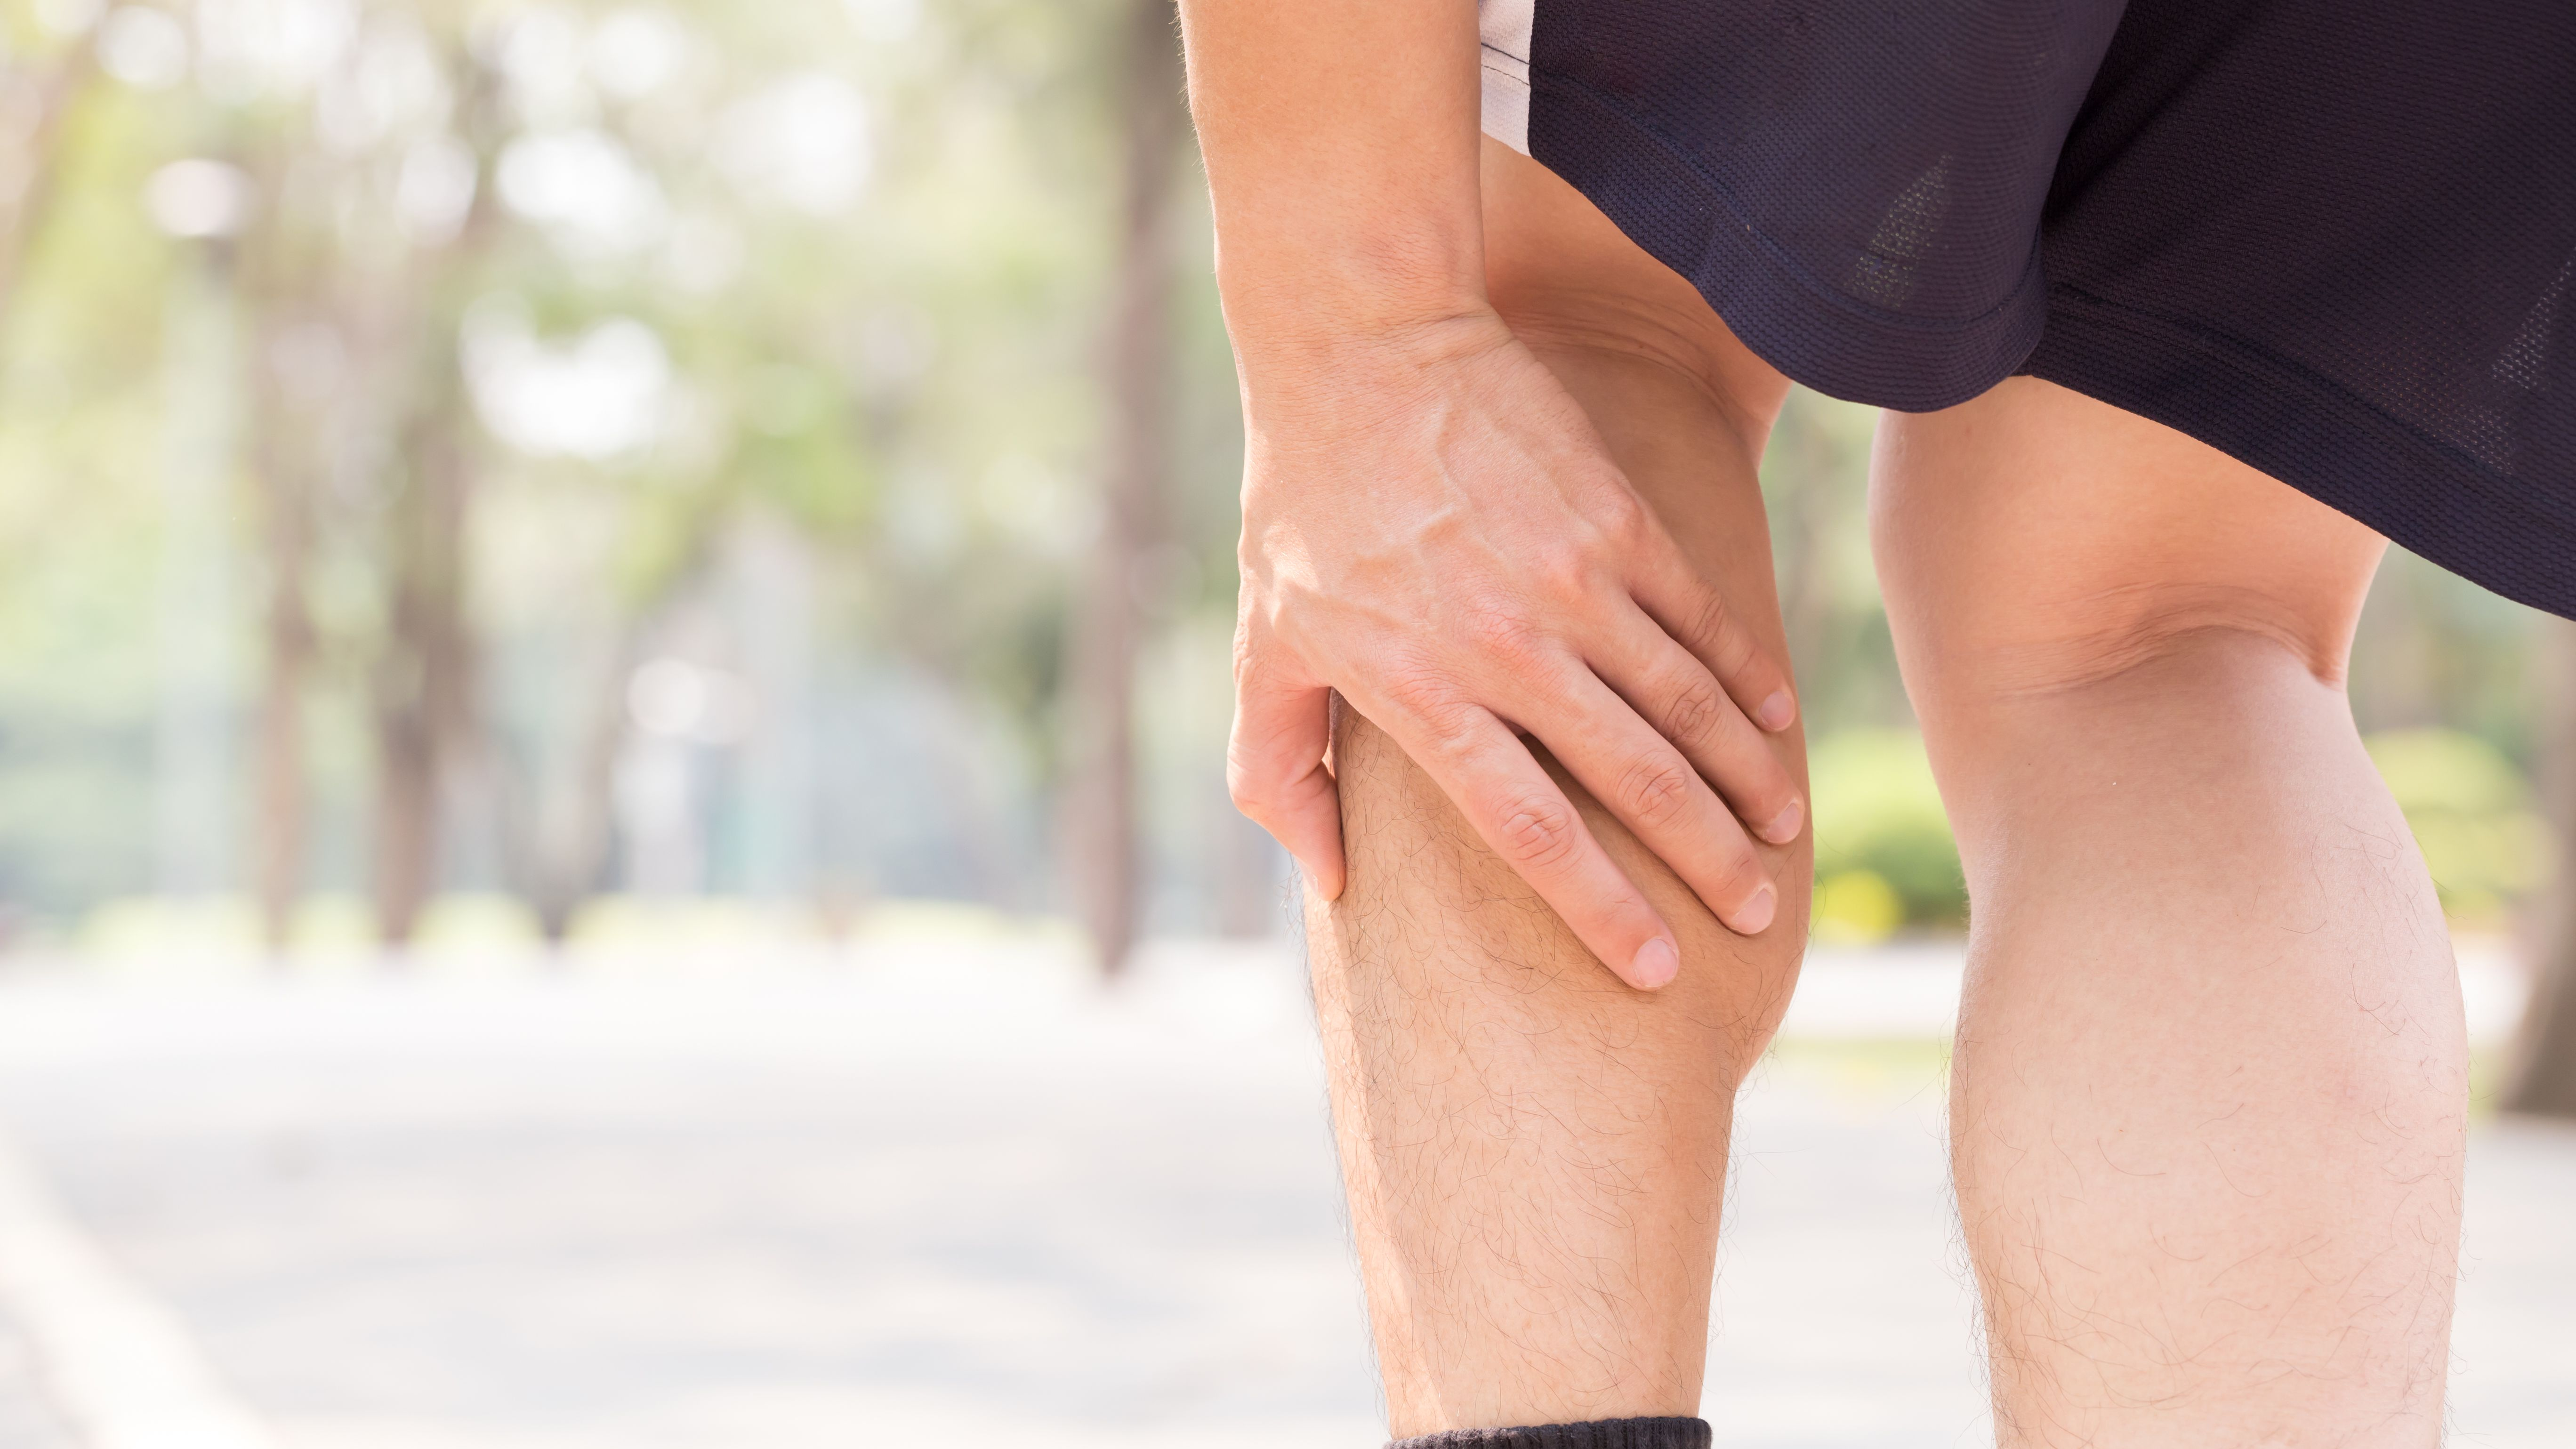 How To Avoid And Treat Muscle Cramps From Running